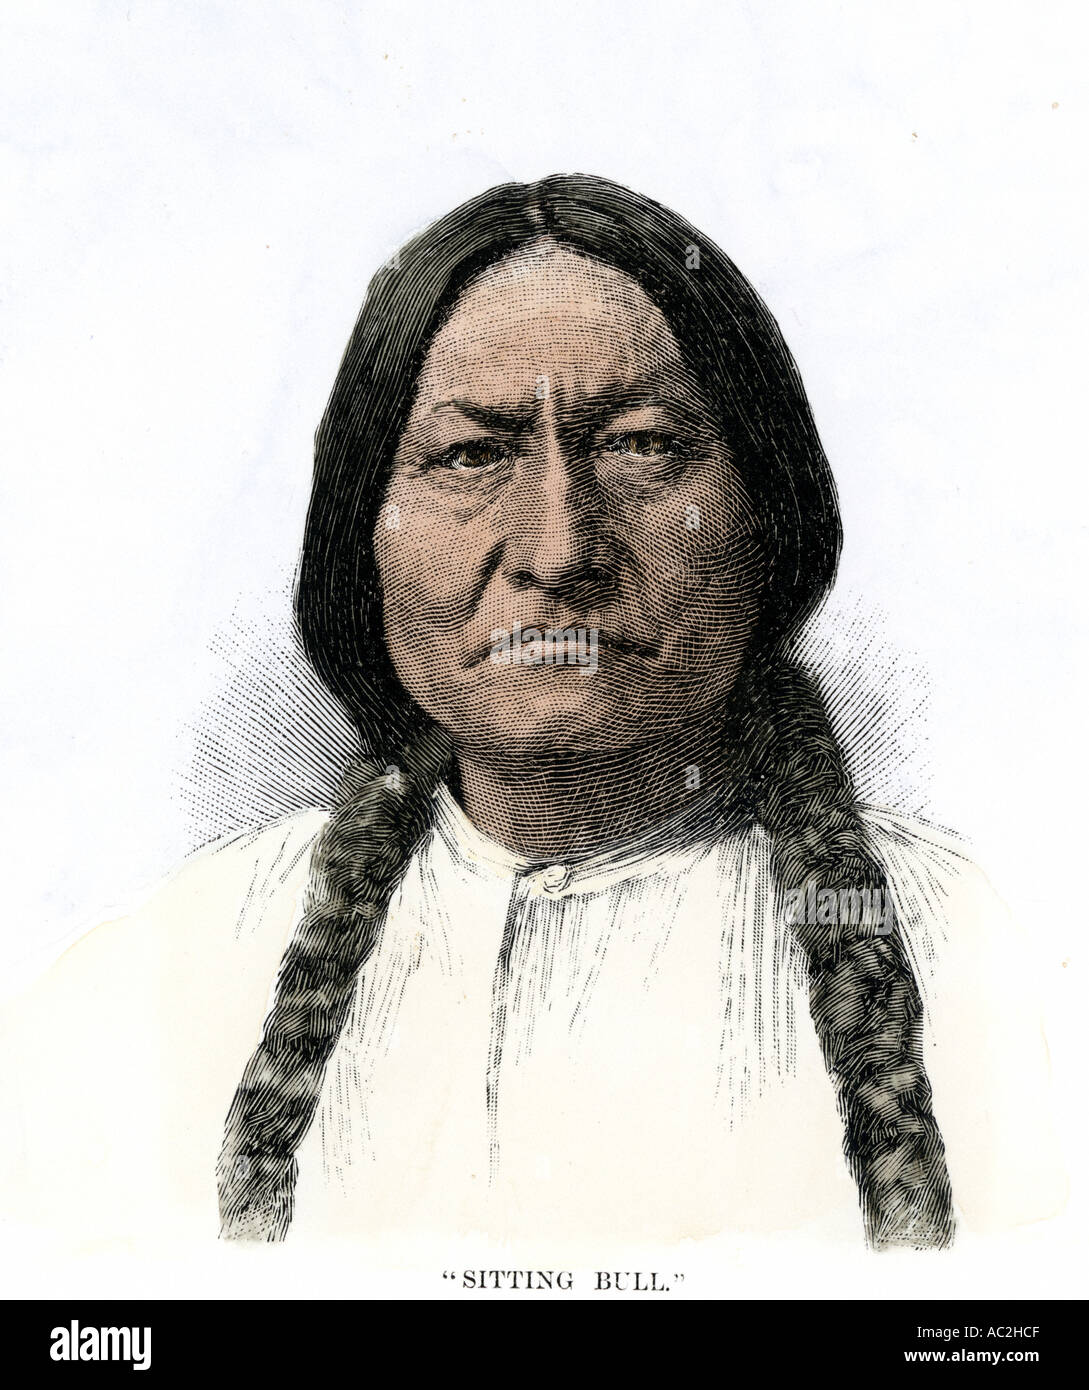 Sitting Bull or Tatanka Iyotake leader of the Sioux Nation. Hand-colored woodcut - Stock Image